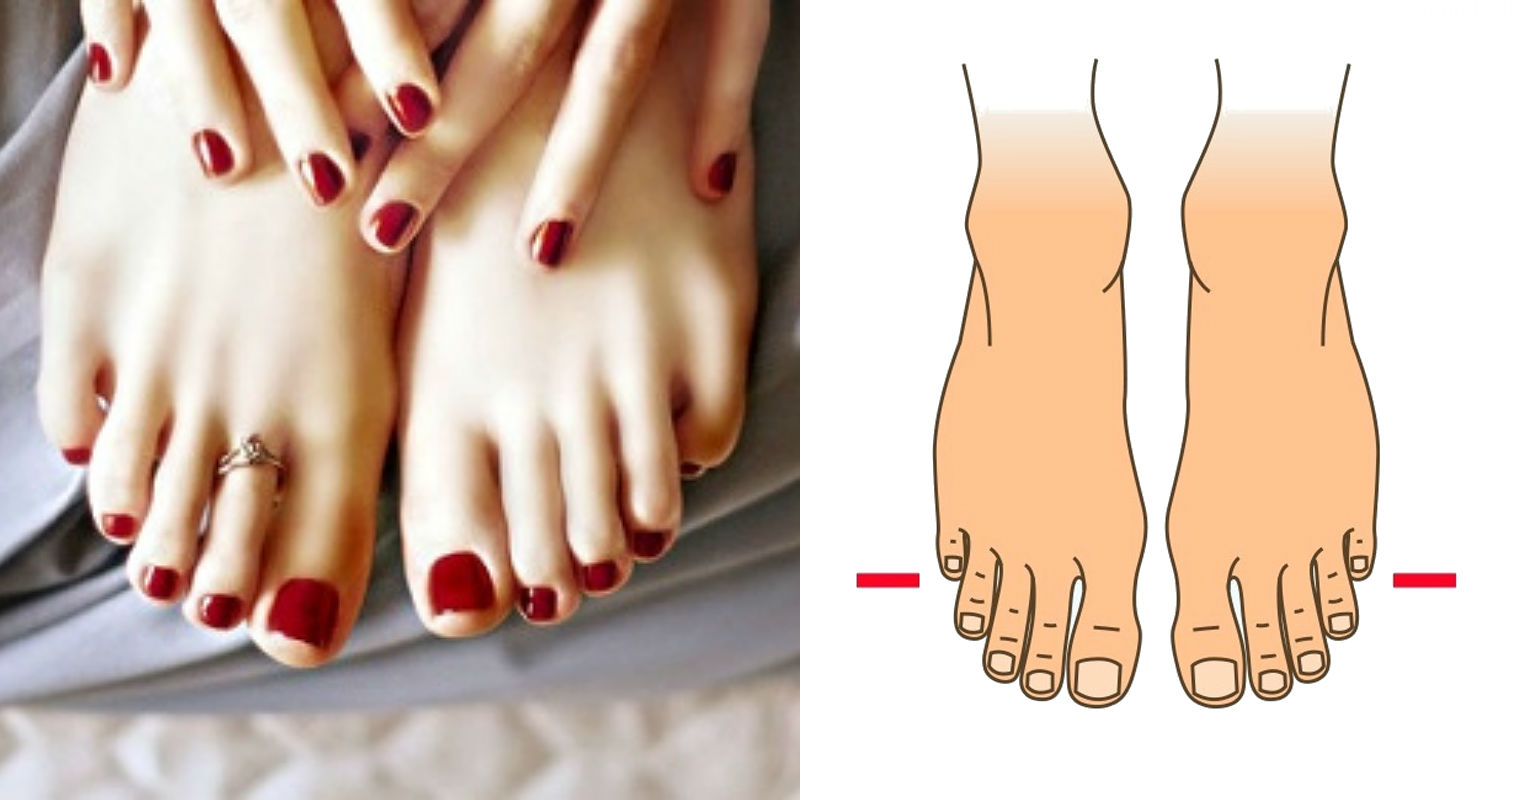 foot shapes